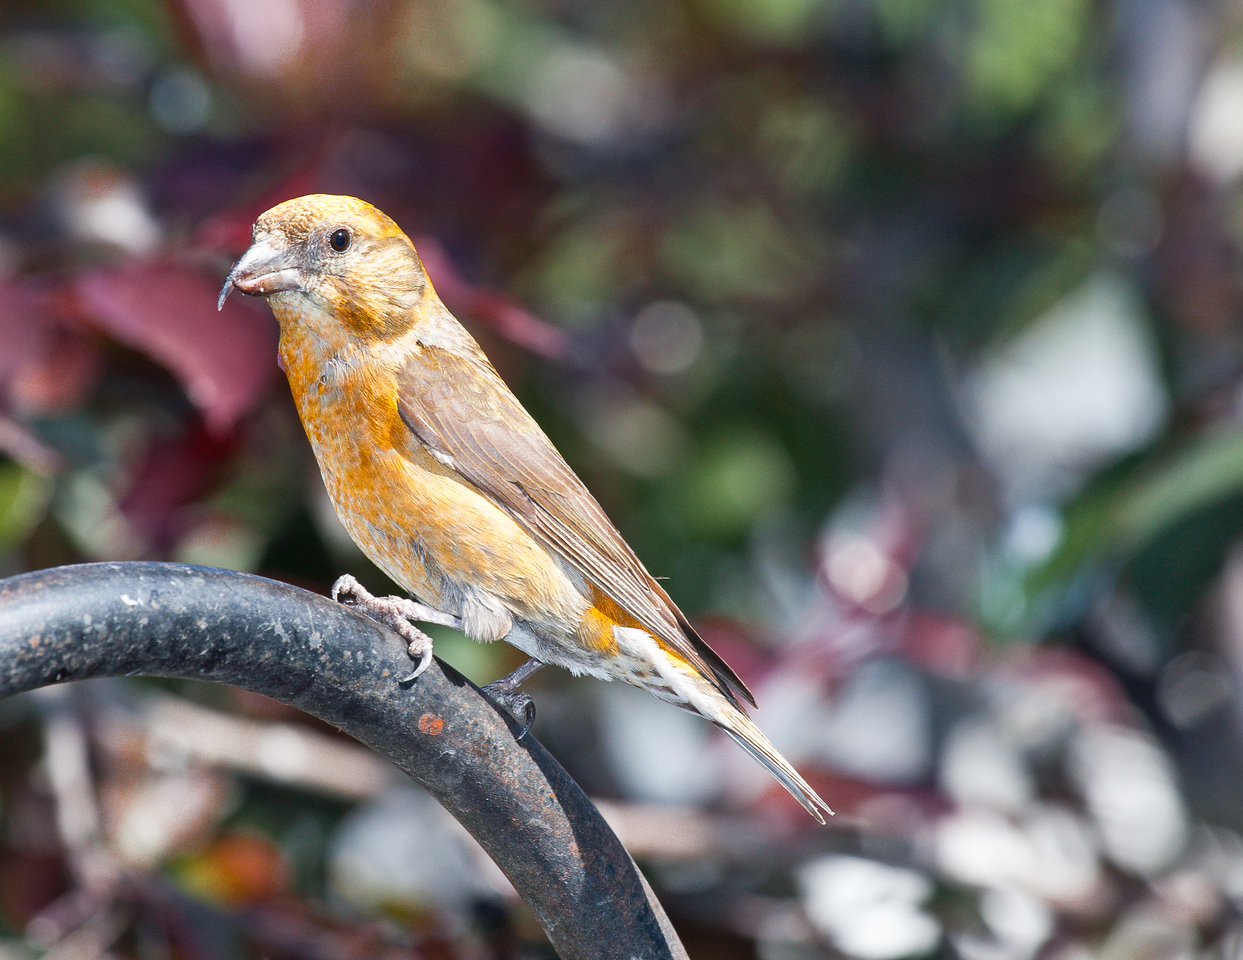 100-400mmL crossbill crop